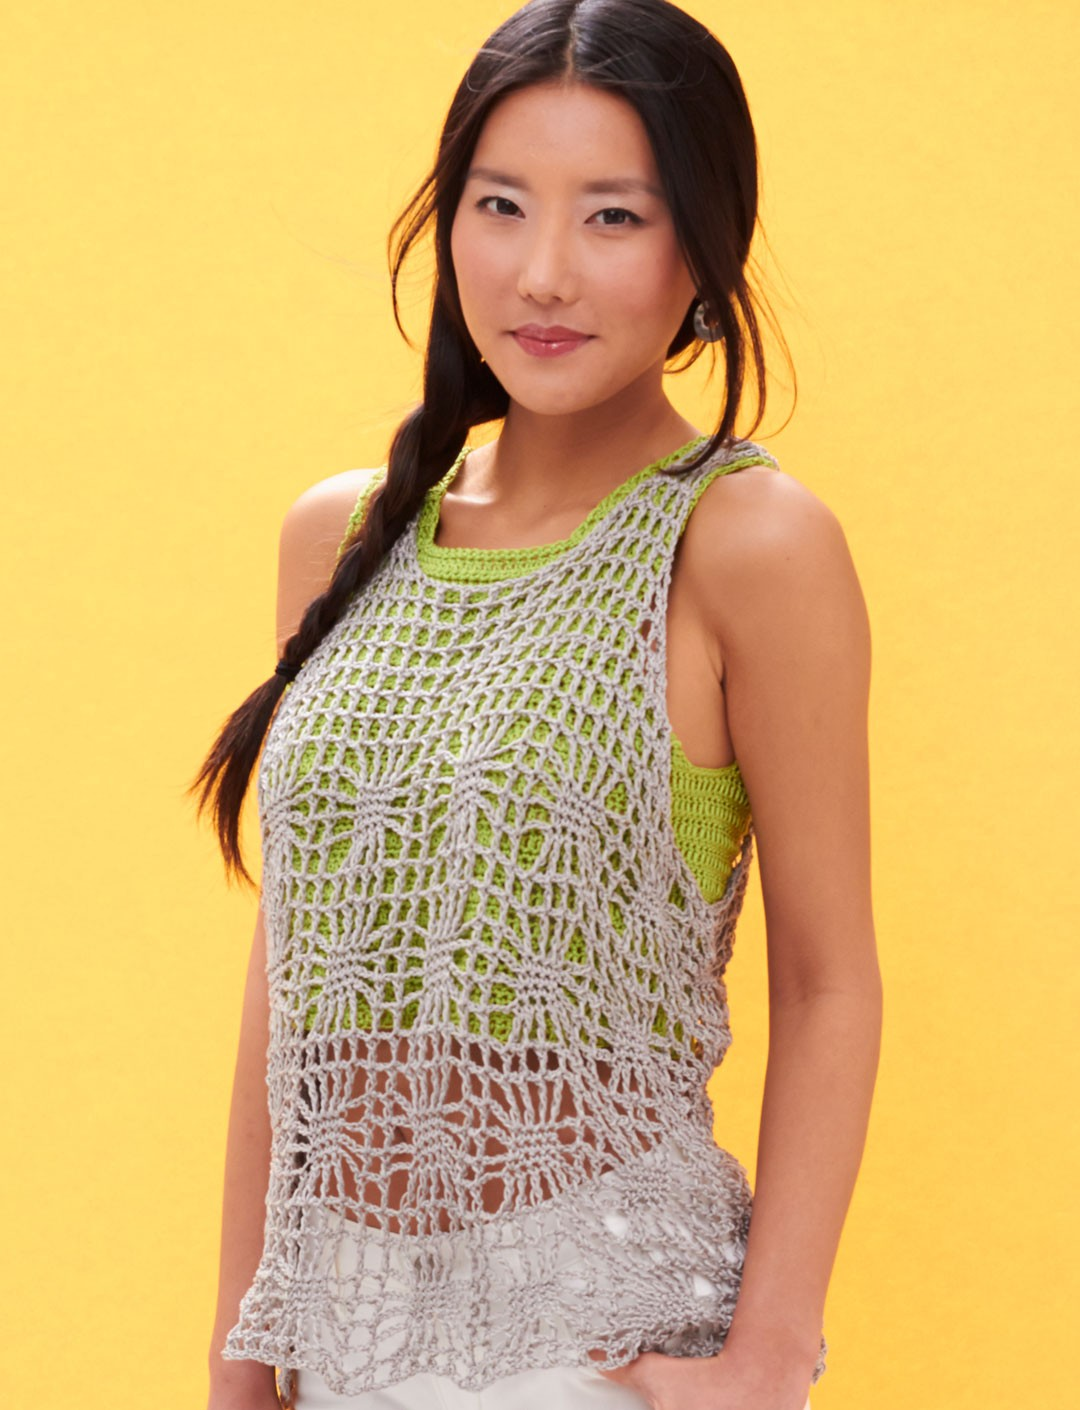 Free Crochet Patterns Women s Tank Tops : Patons Light Layers Tank, Crochet Pattern Yarnspirations